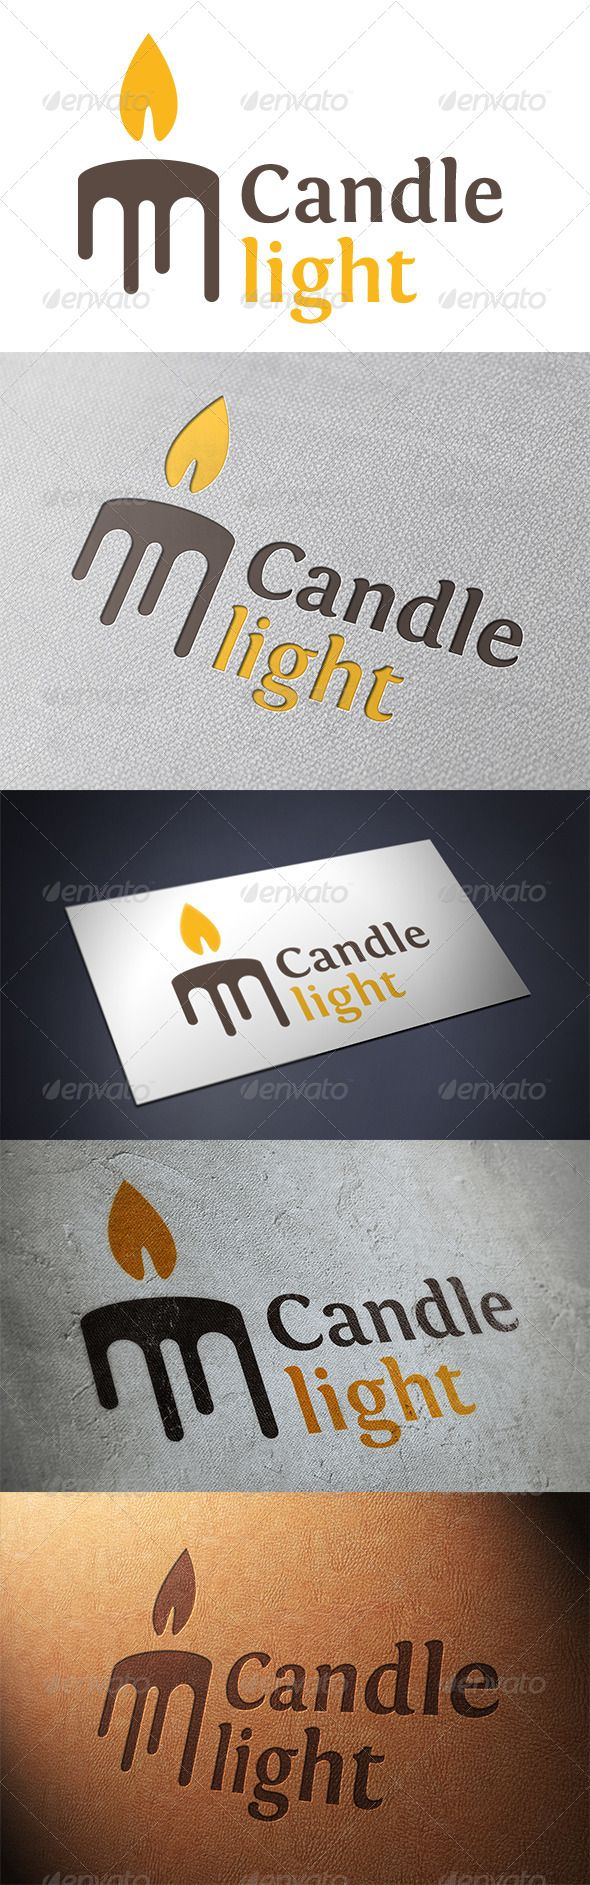 Candle Logo Template — Vector EPS #candlelight dinner #light energy logo • Available here → https://graphicriver.net/item/candle-logo-template/5374966?ref=pxcr